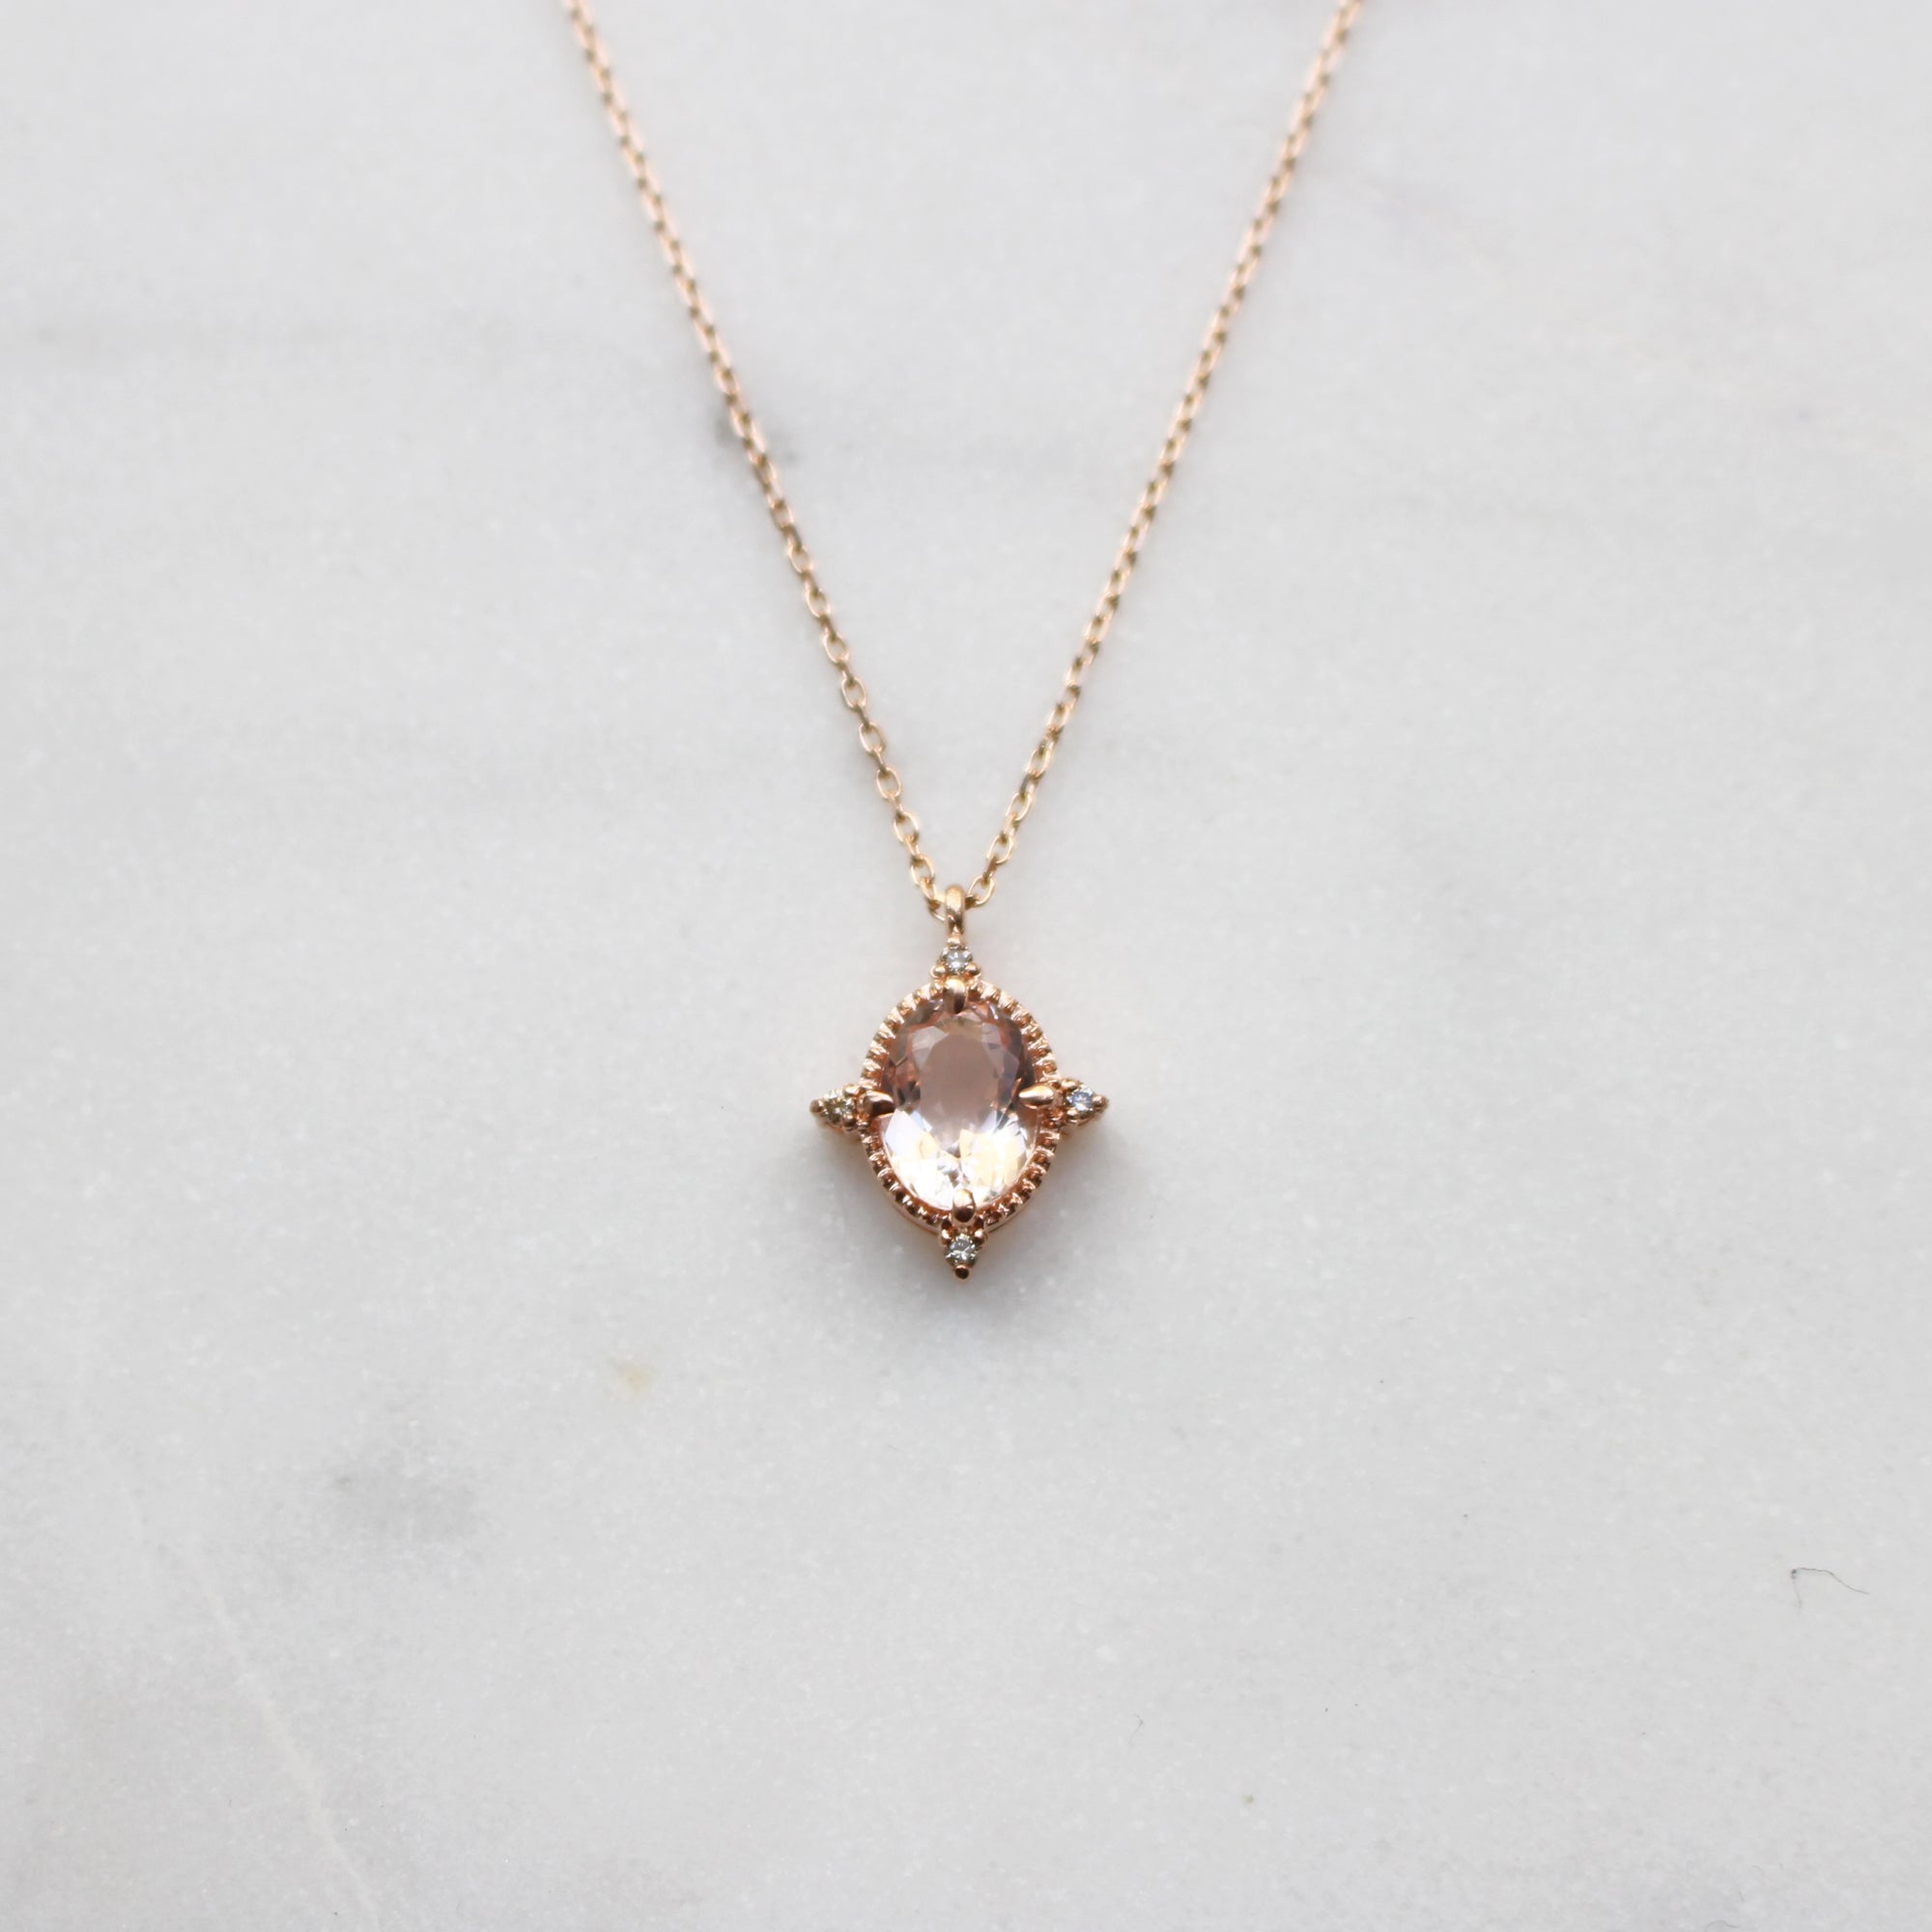 jewelry rose overstock diamond tdw morganite ctw gold necklace boston free shipping bay infinity pendant today diamonds pink watches product